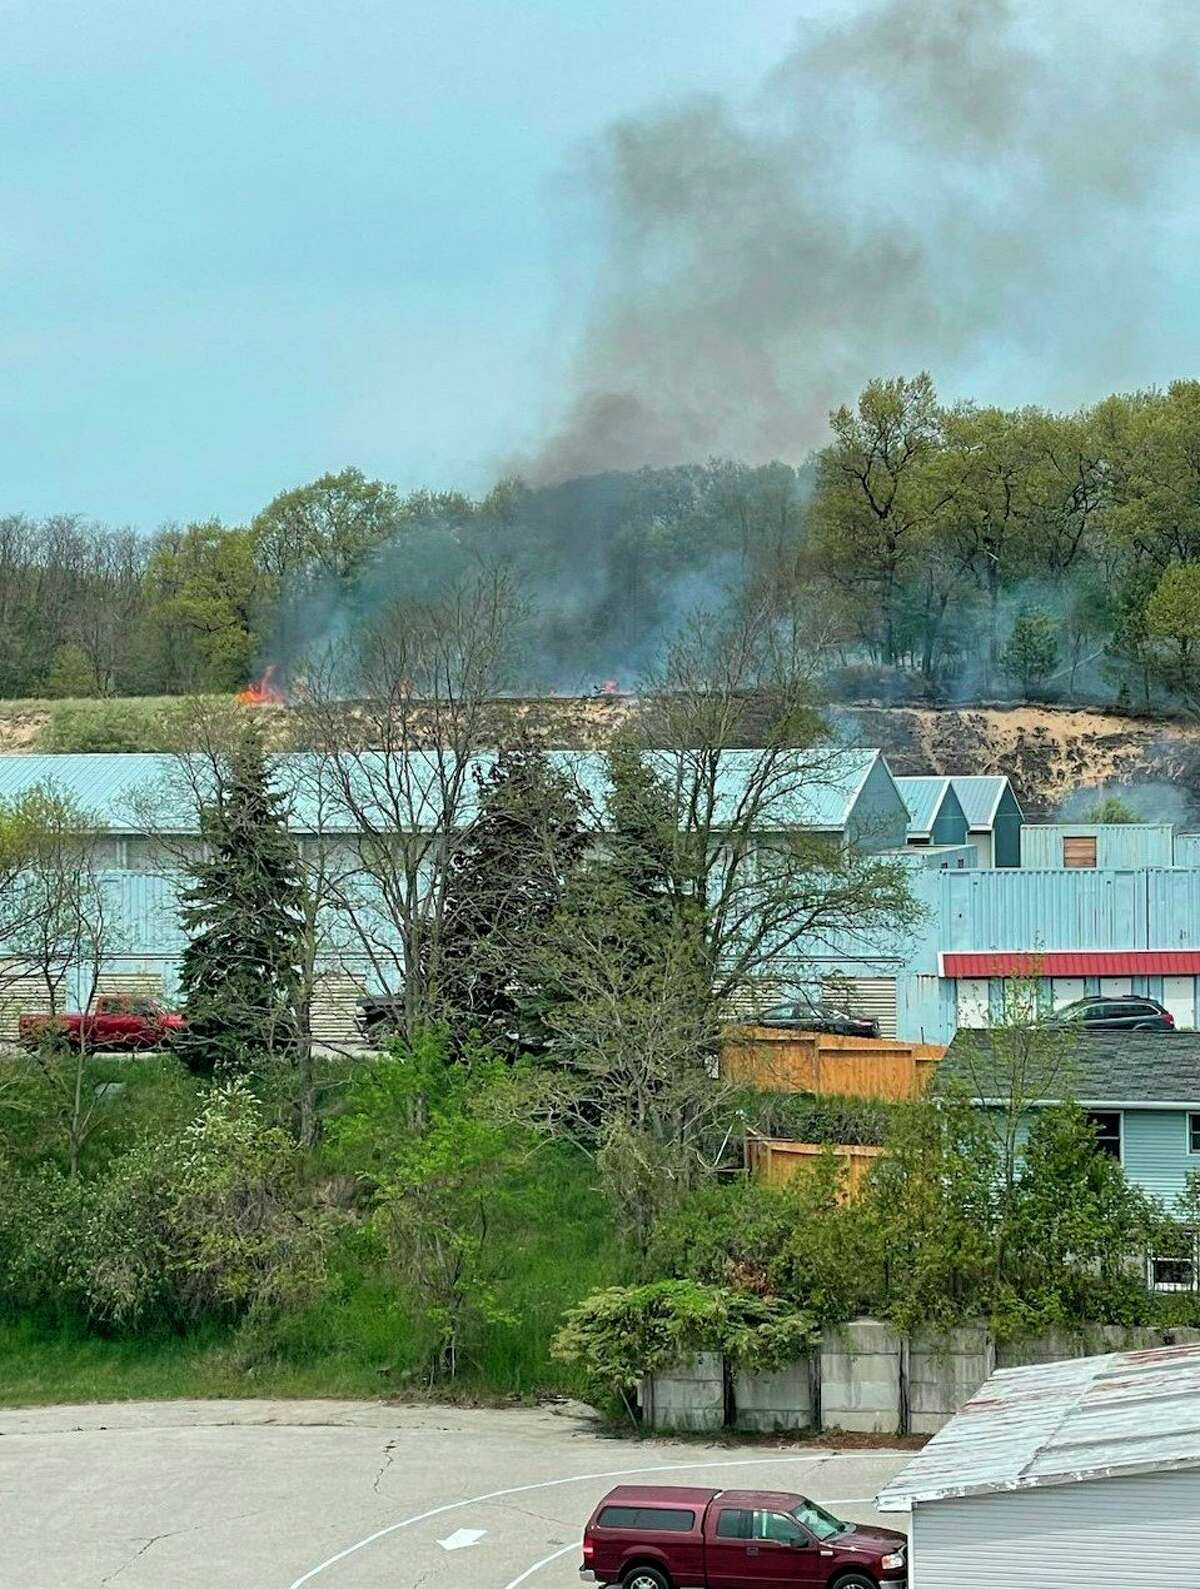 Firefighters were on the scene Friday afternoon in response to a grass fire near 74 Arthur St. in Manistee. (Courtesy photo)